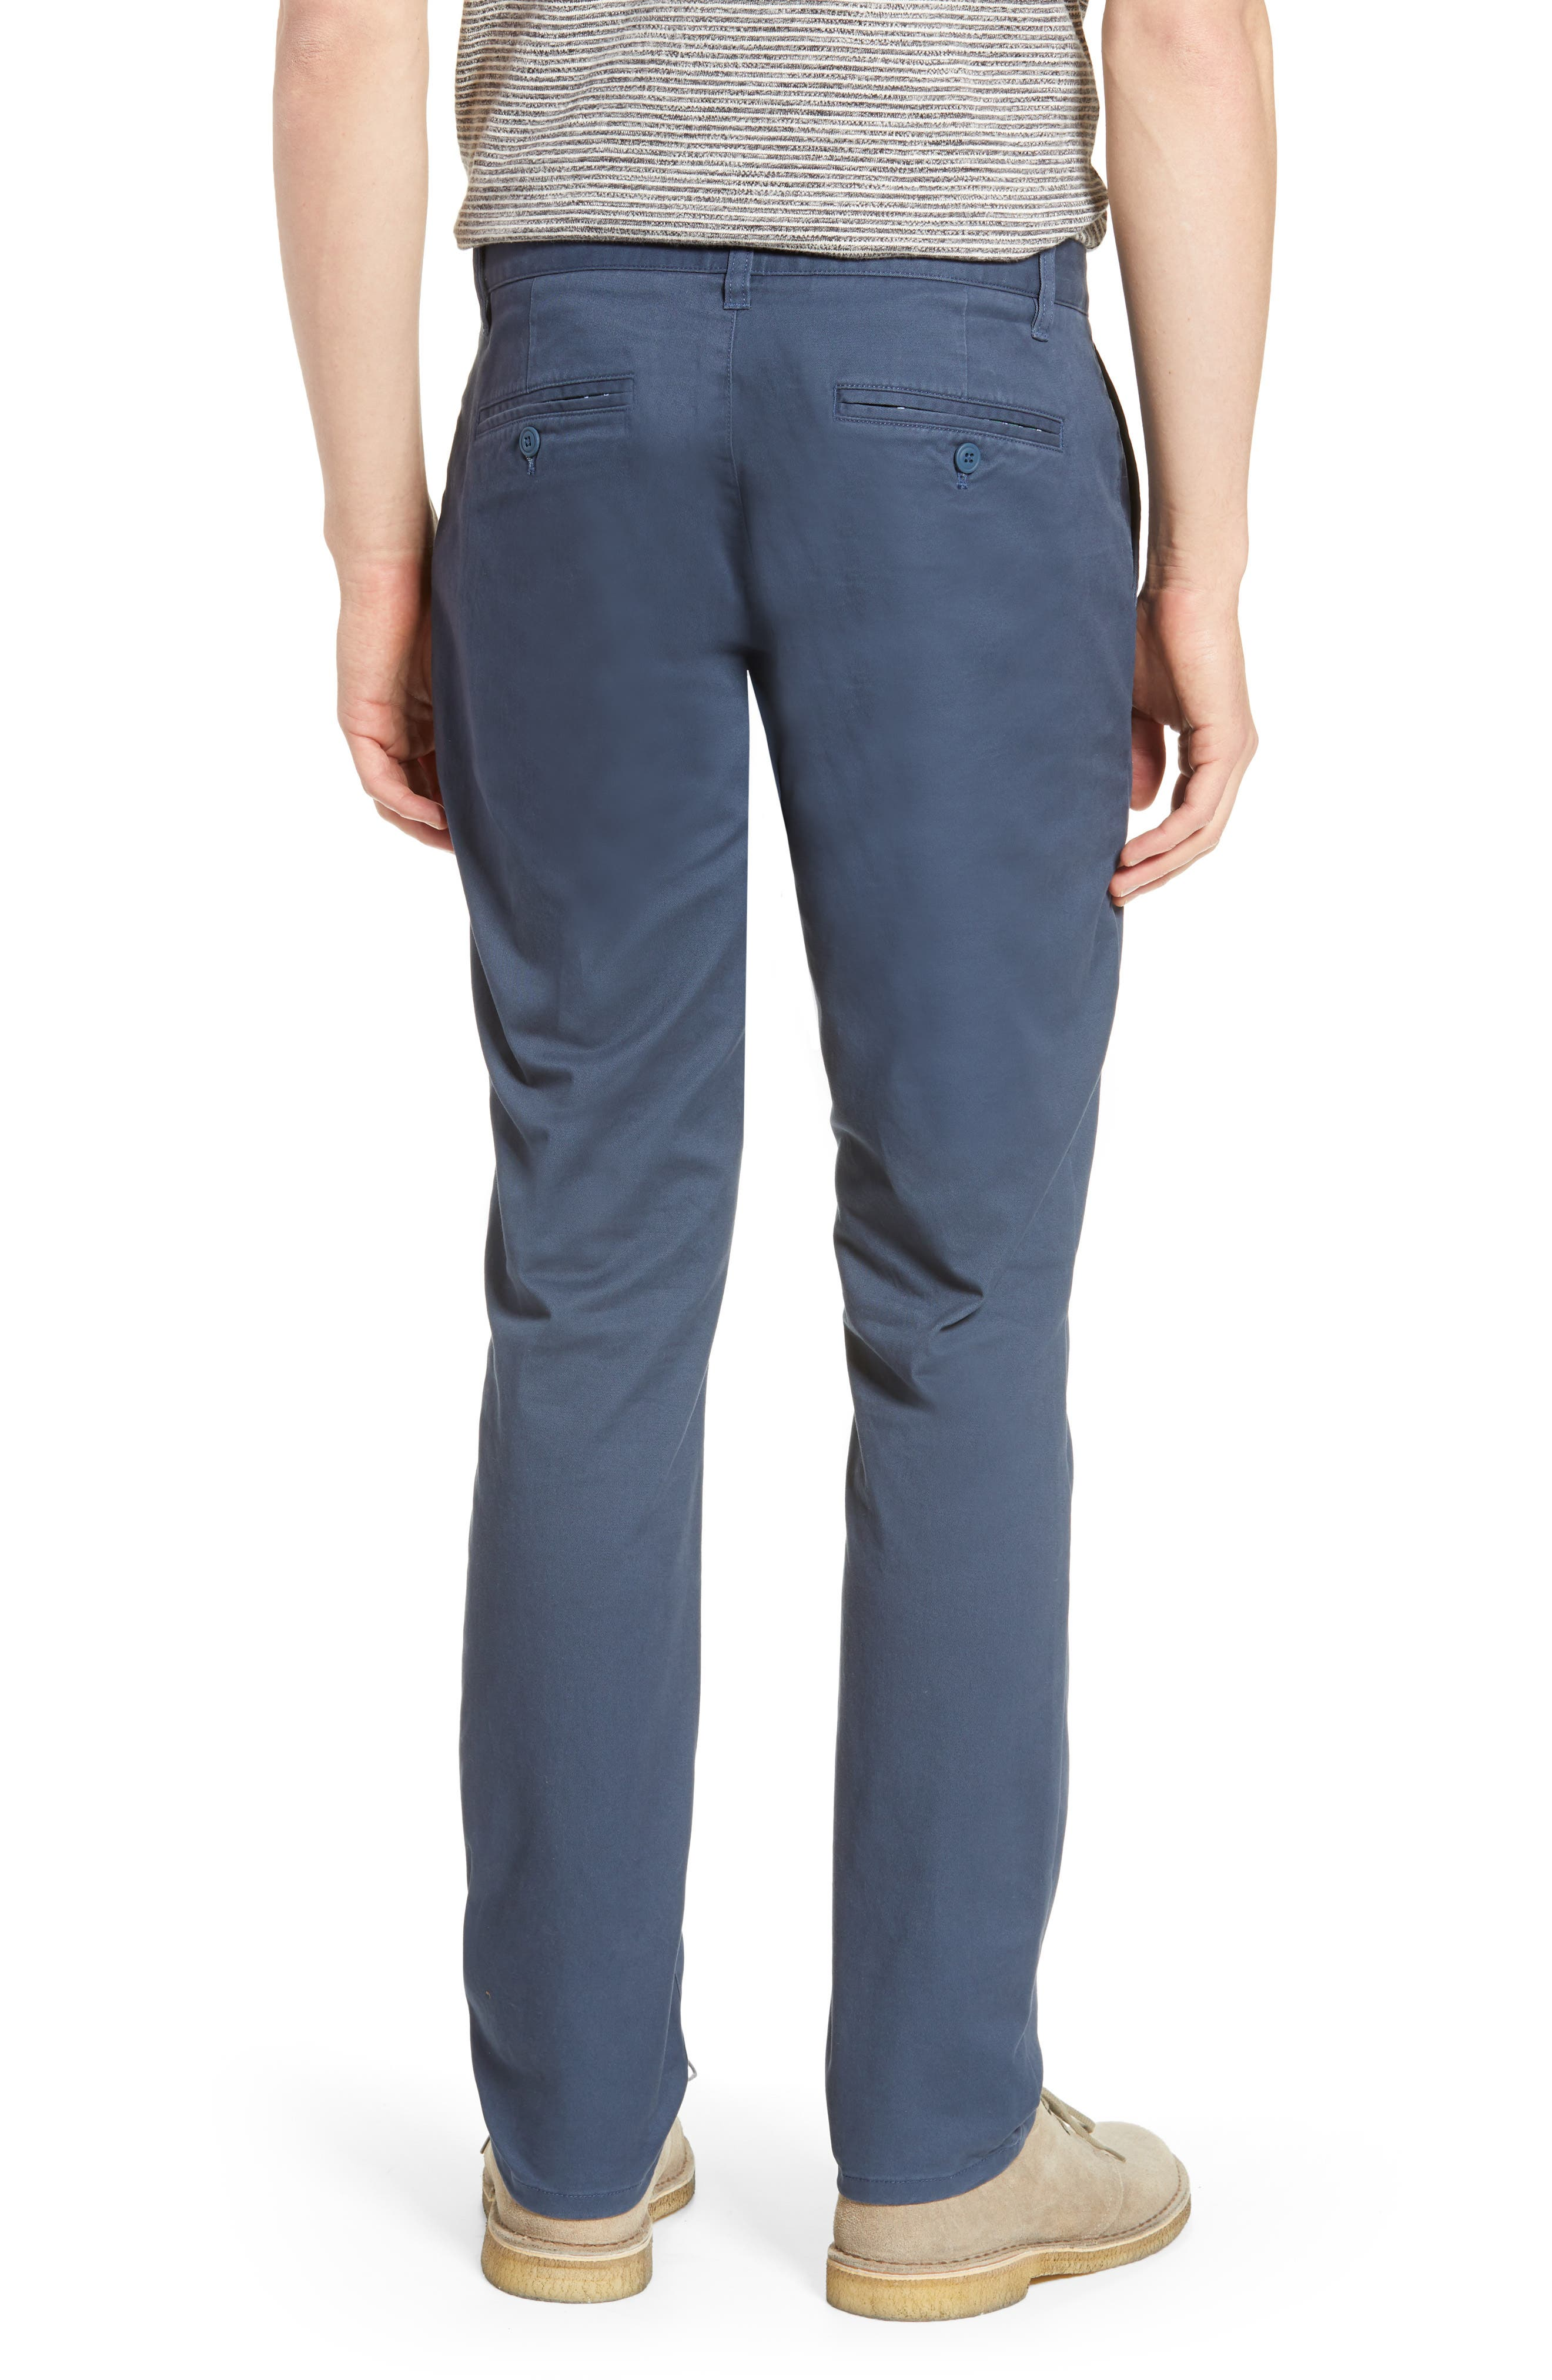 BONOBOS, Tailored Fit Washed Stretch Cotton Chinos, Alternate thumbnail 2, color, STEELY